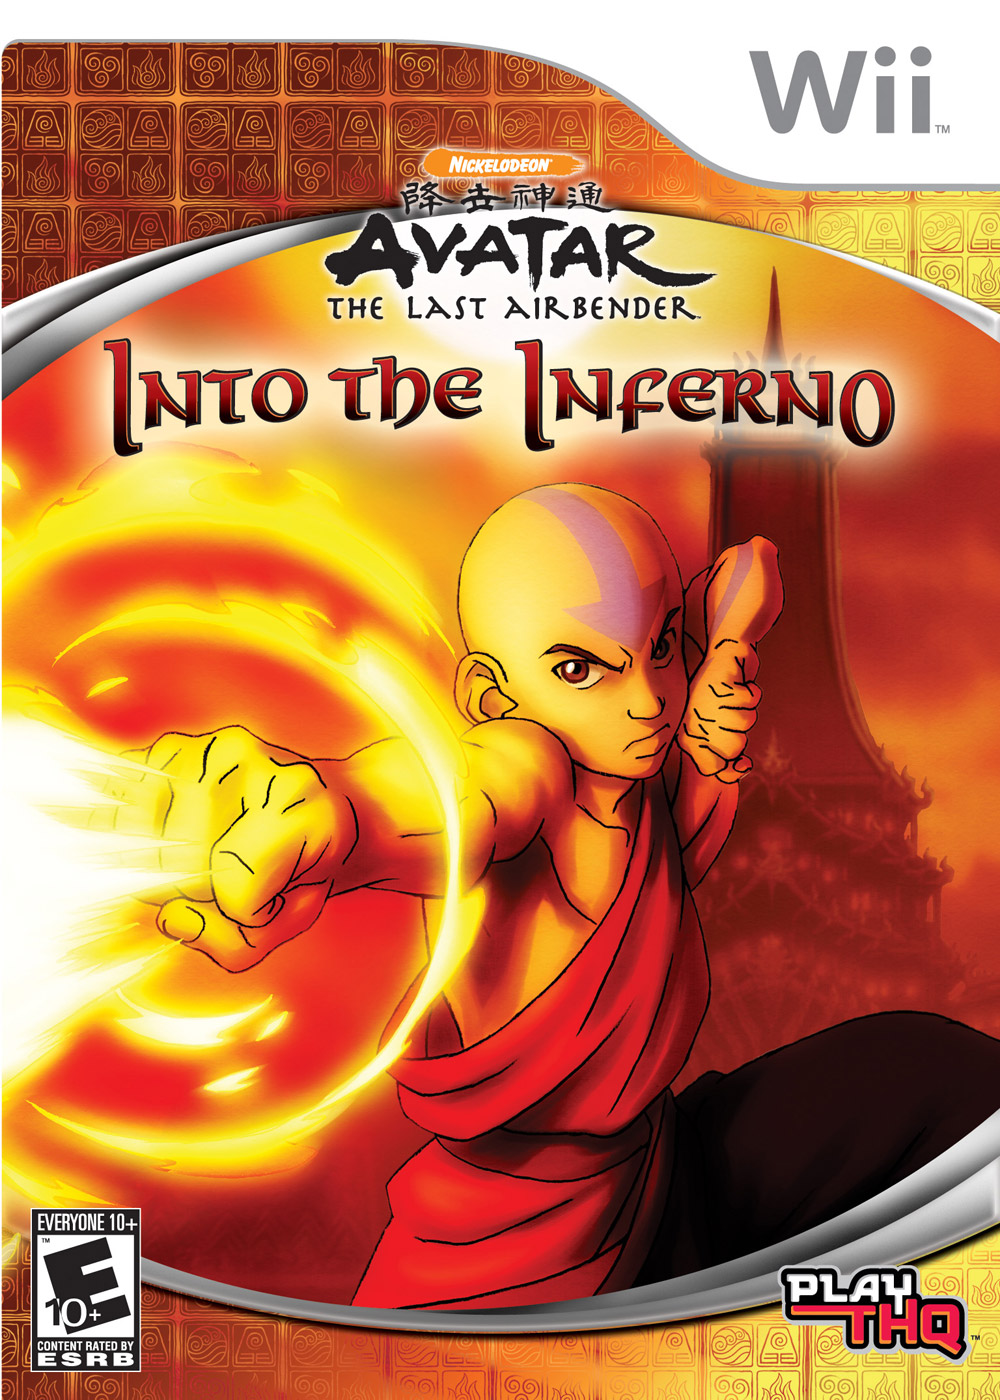 Rom juego Avatar - The Last Airbender- Into The Inferno